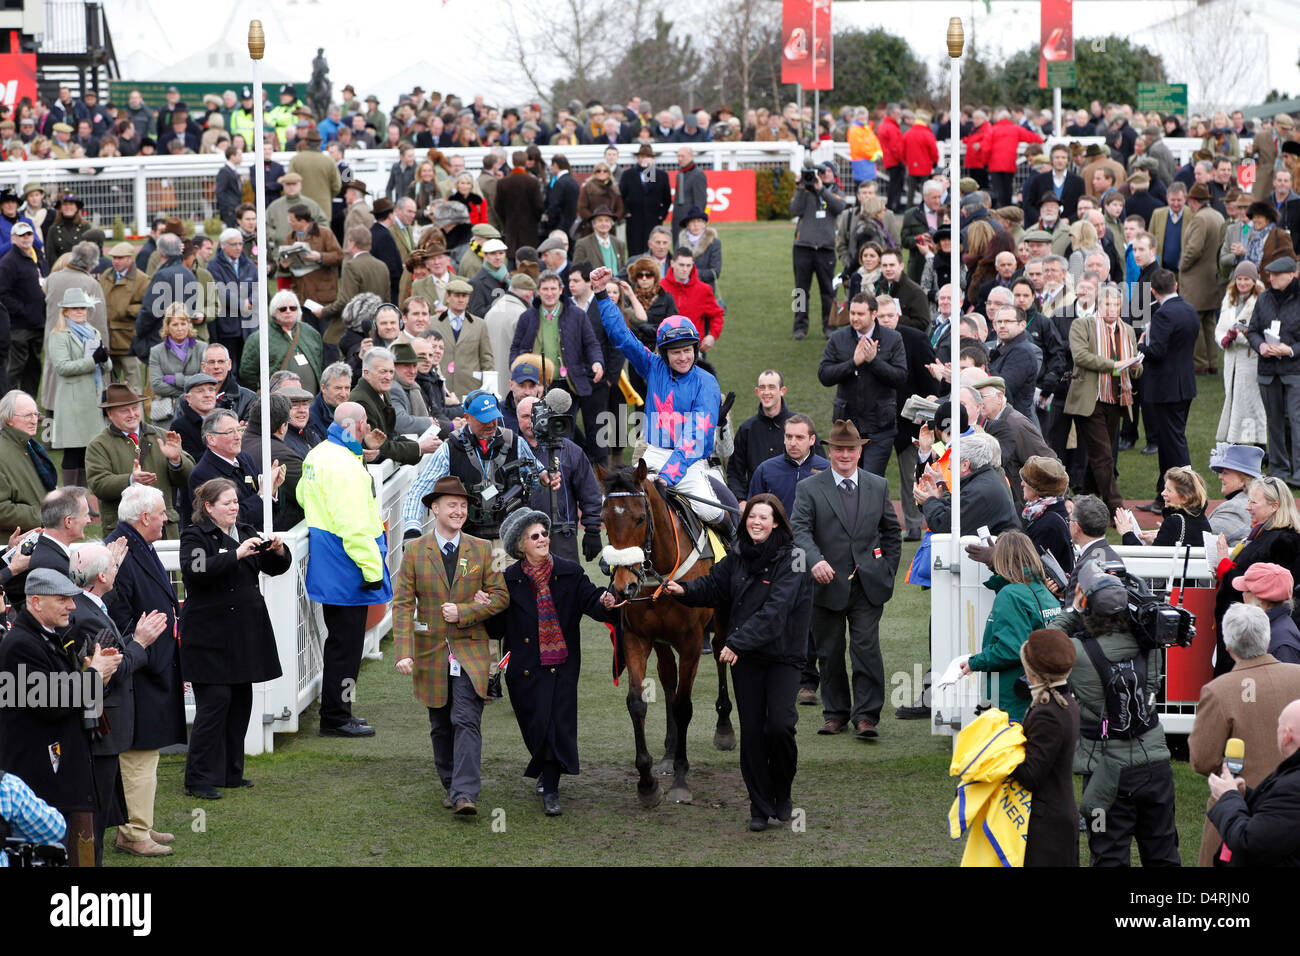 14.03.2013 - Cheltenham; Winners presentation with Cue Card, ridden by Joe Tizzard after winning the Ryanair Chase - Stock Image